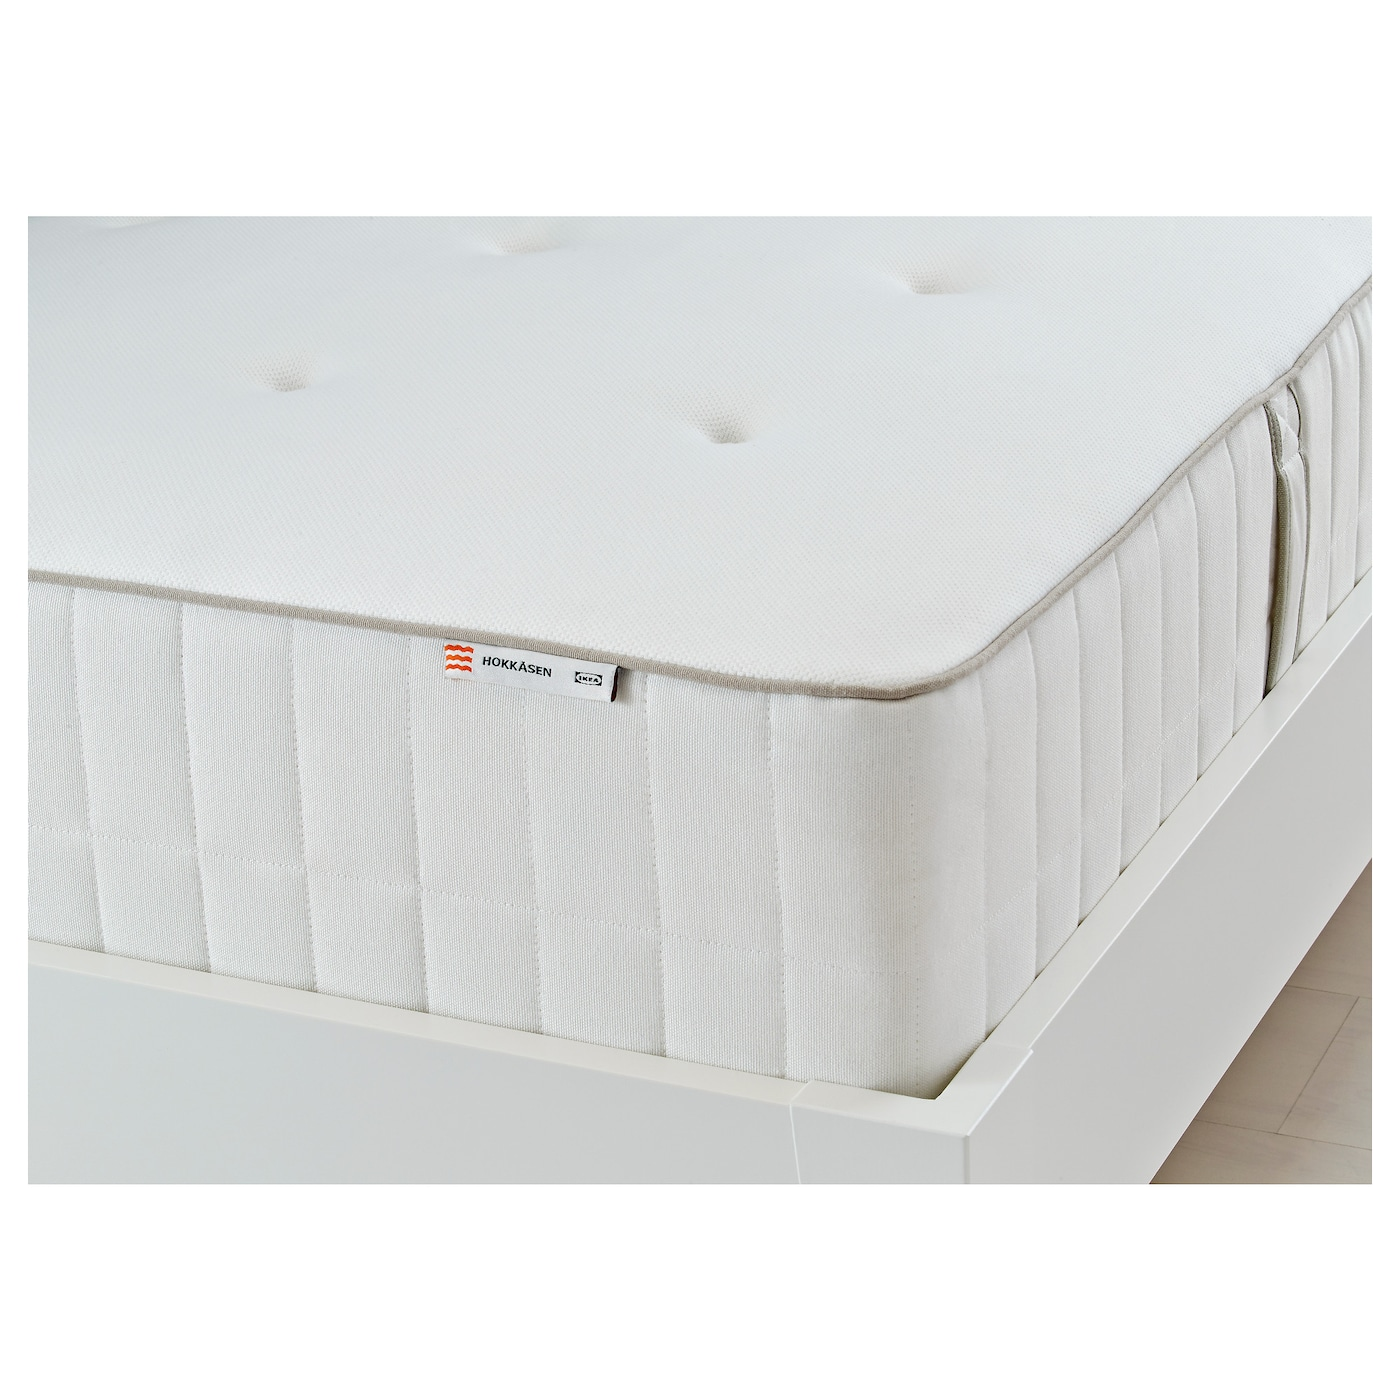 IKEA HOKKÅSEN pocket sprung mattress A generous layer of soft fillings adds support and comfort.